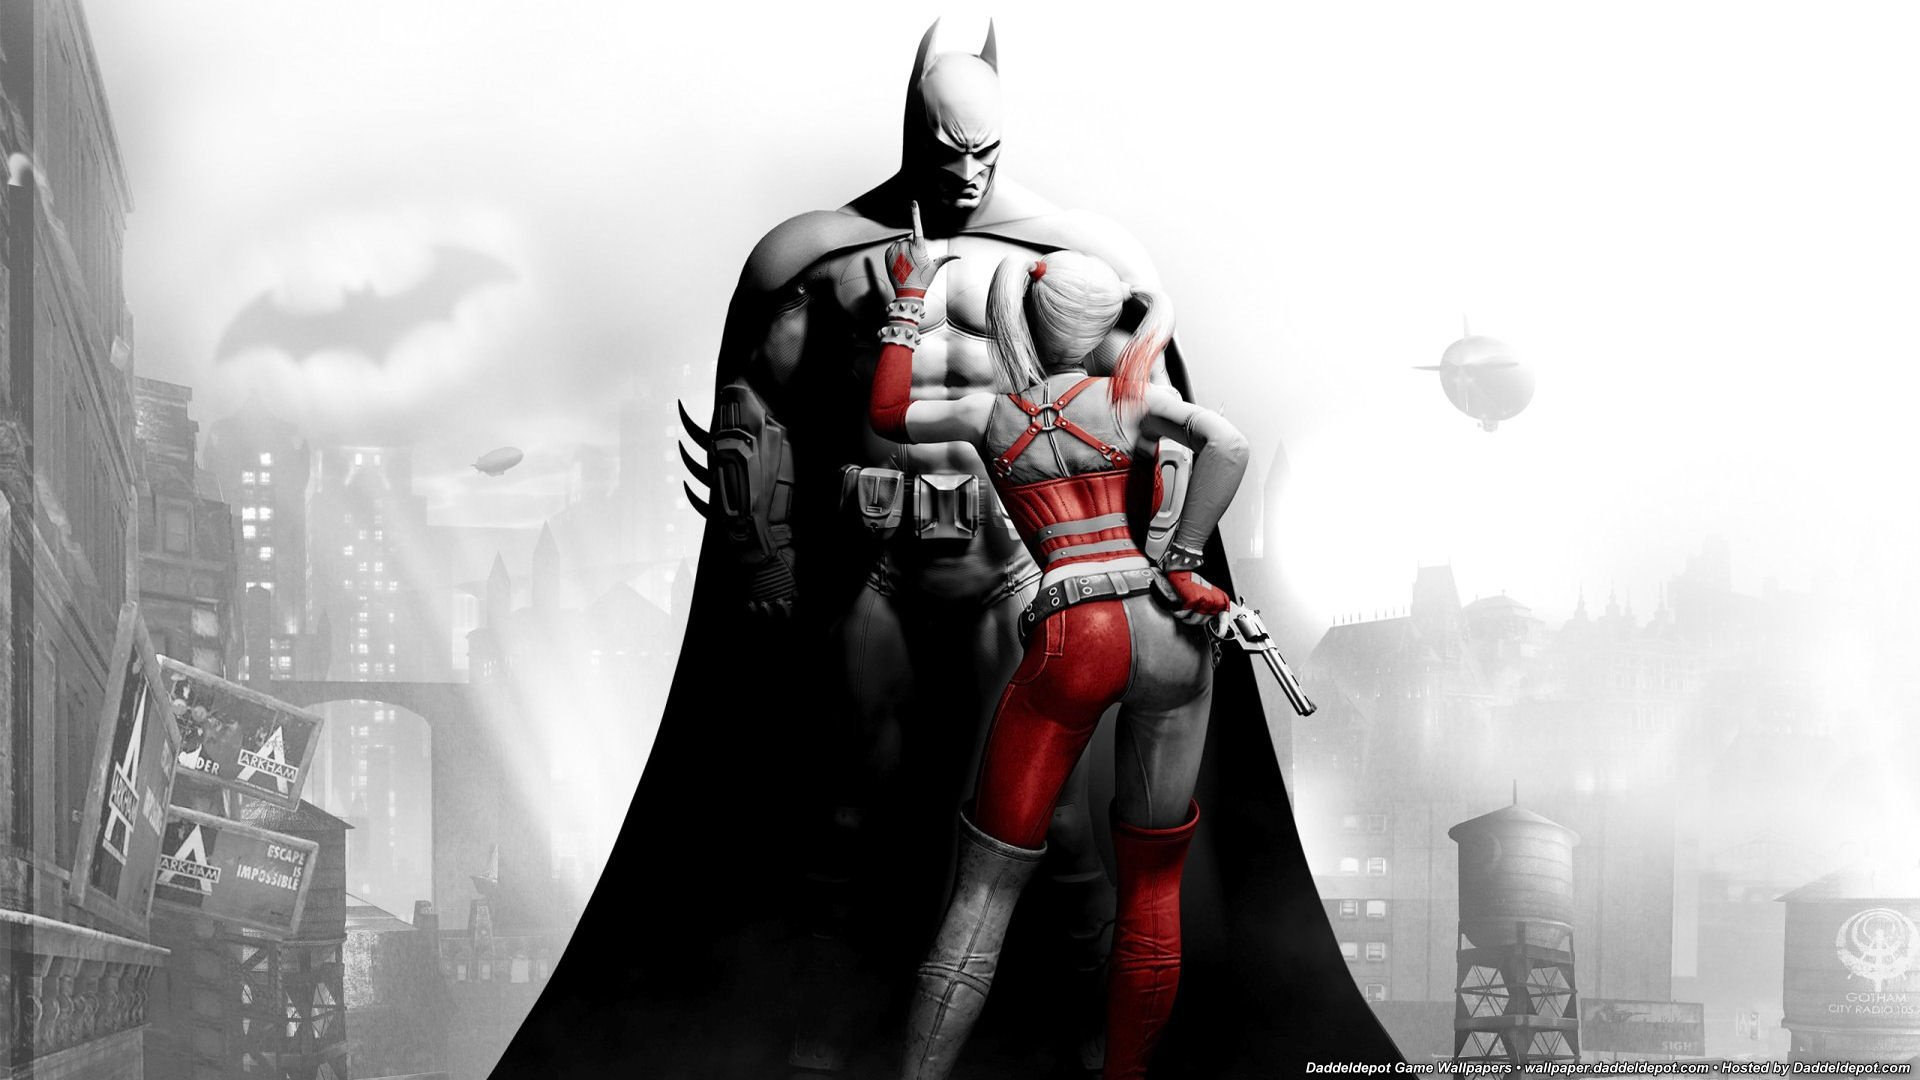 1920x1080 Batman Arkham City desktop PC and Mac wallpaper 1920x1080